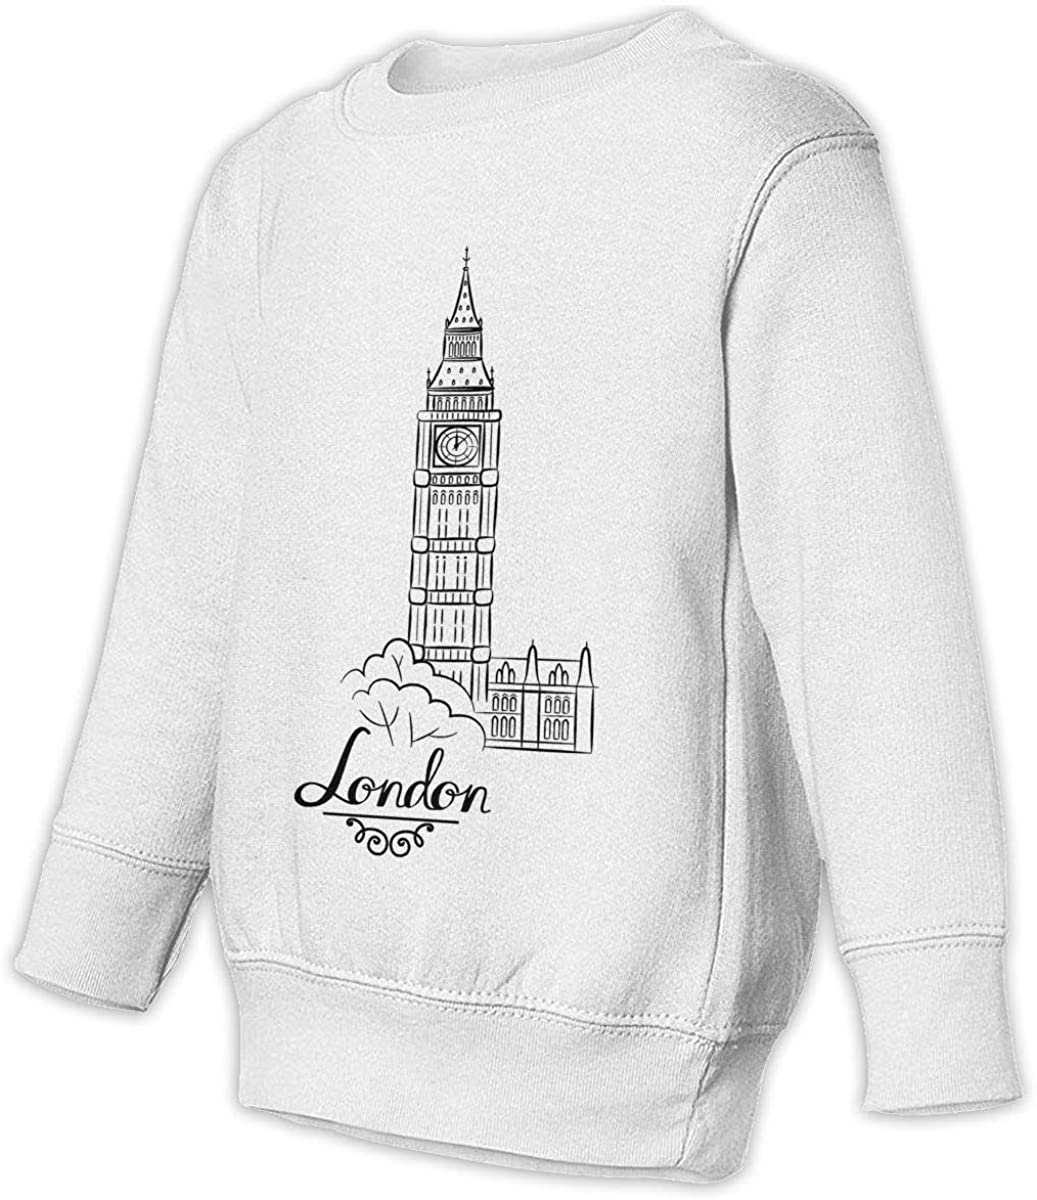 London Eiffel Tower Big Ben Boys Girls Pullover Sweaters Crewneck Sweatshirts Clothes for 2-6 Years Old Children